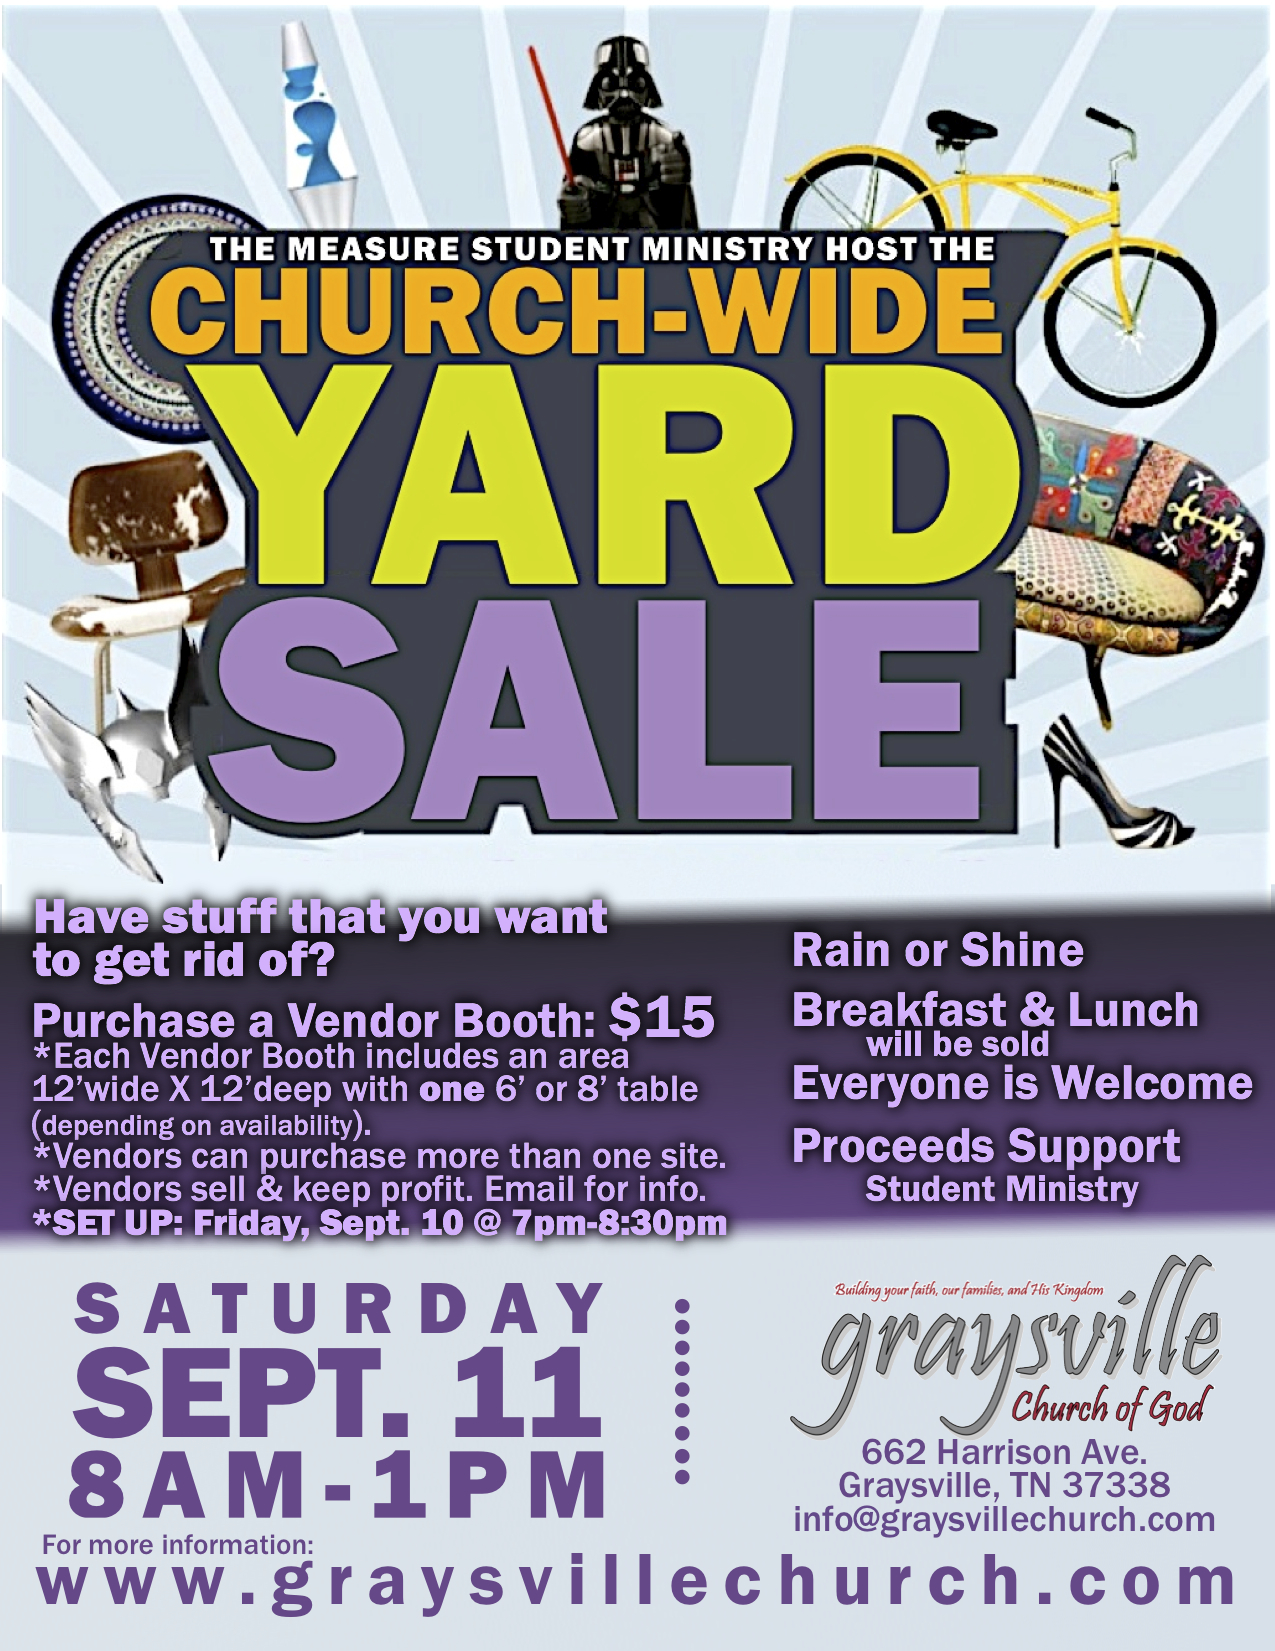 Rummage Sale Flyers http://graysvillechurch.wordpress.com/2010/08/24/church-wide-yard-sale/